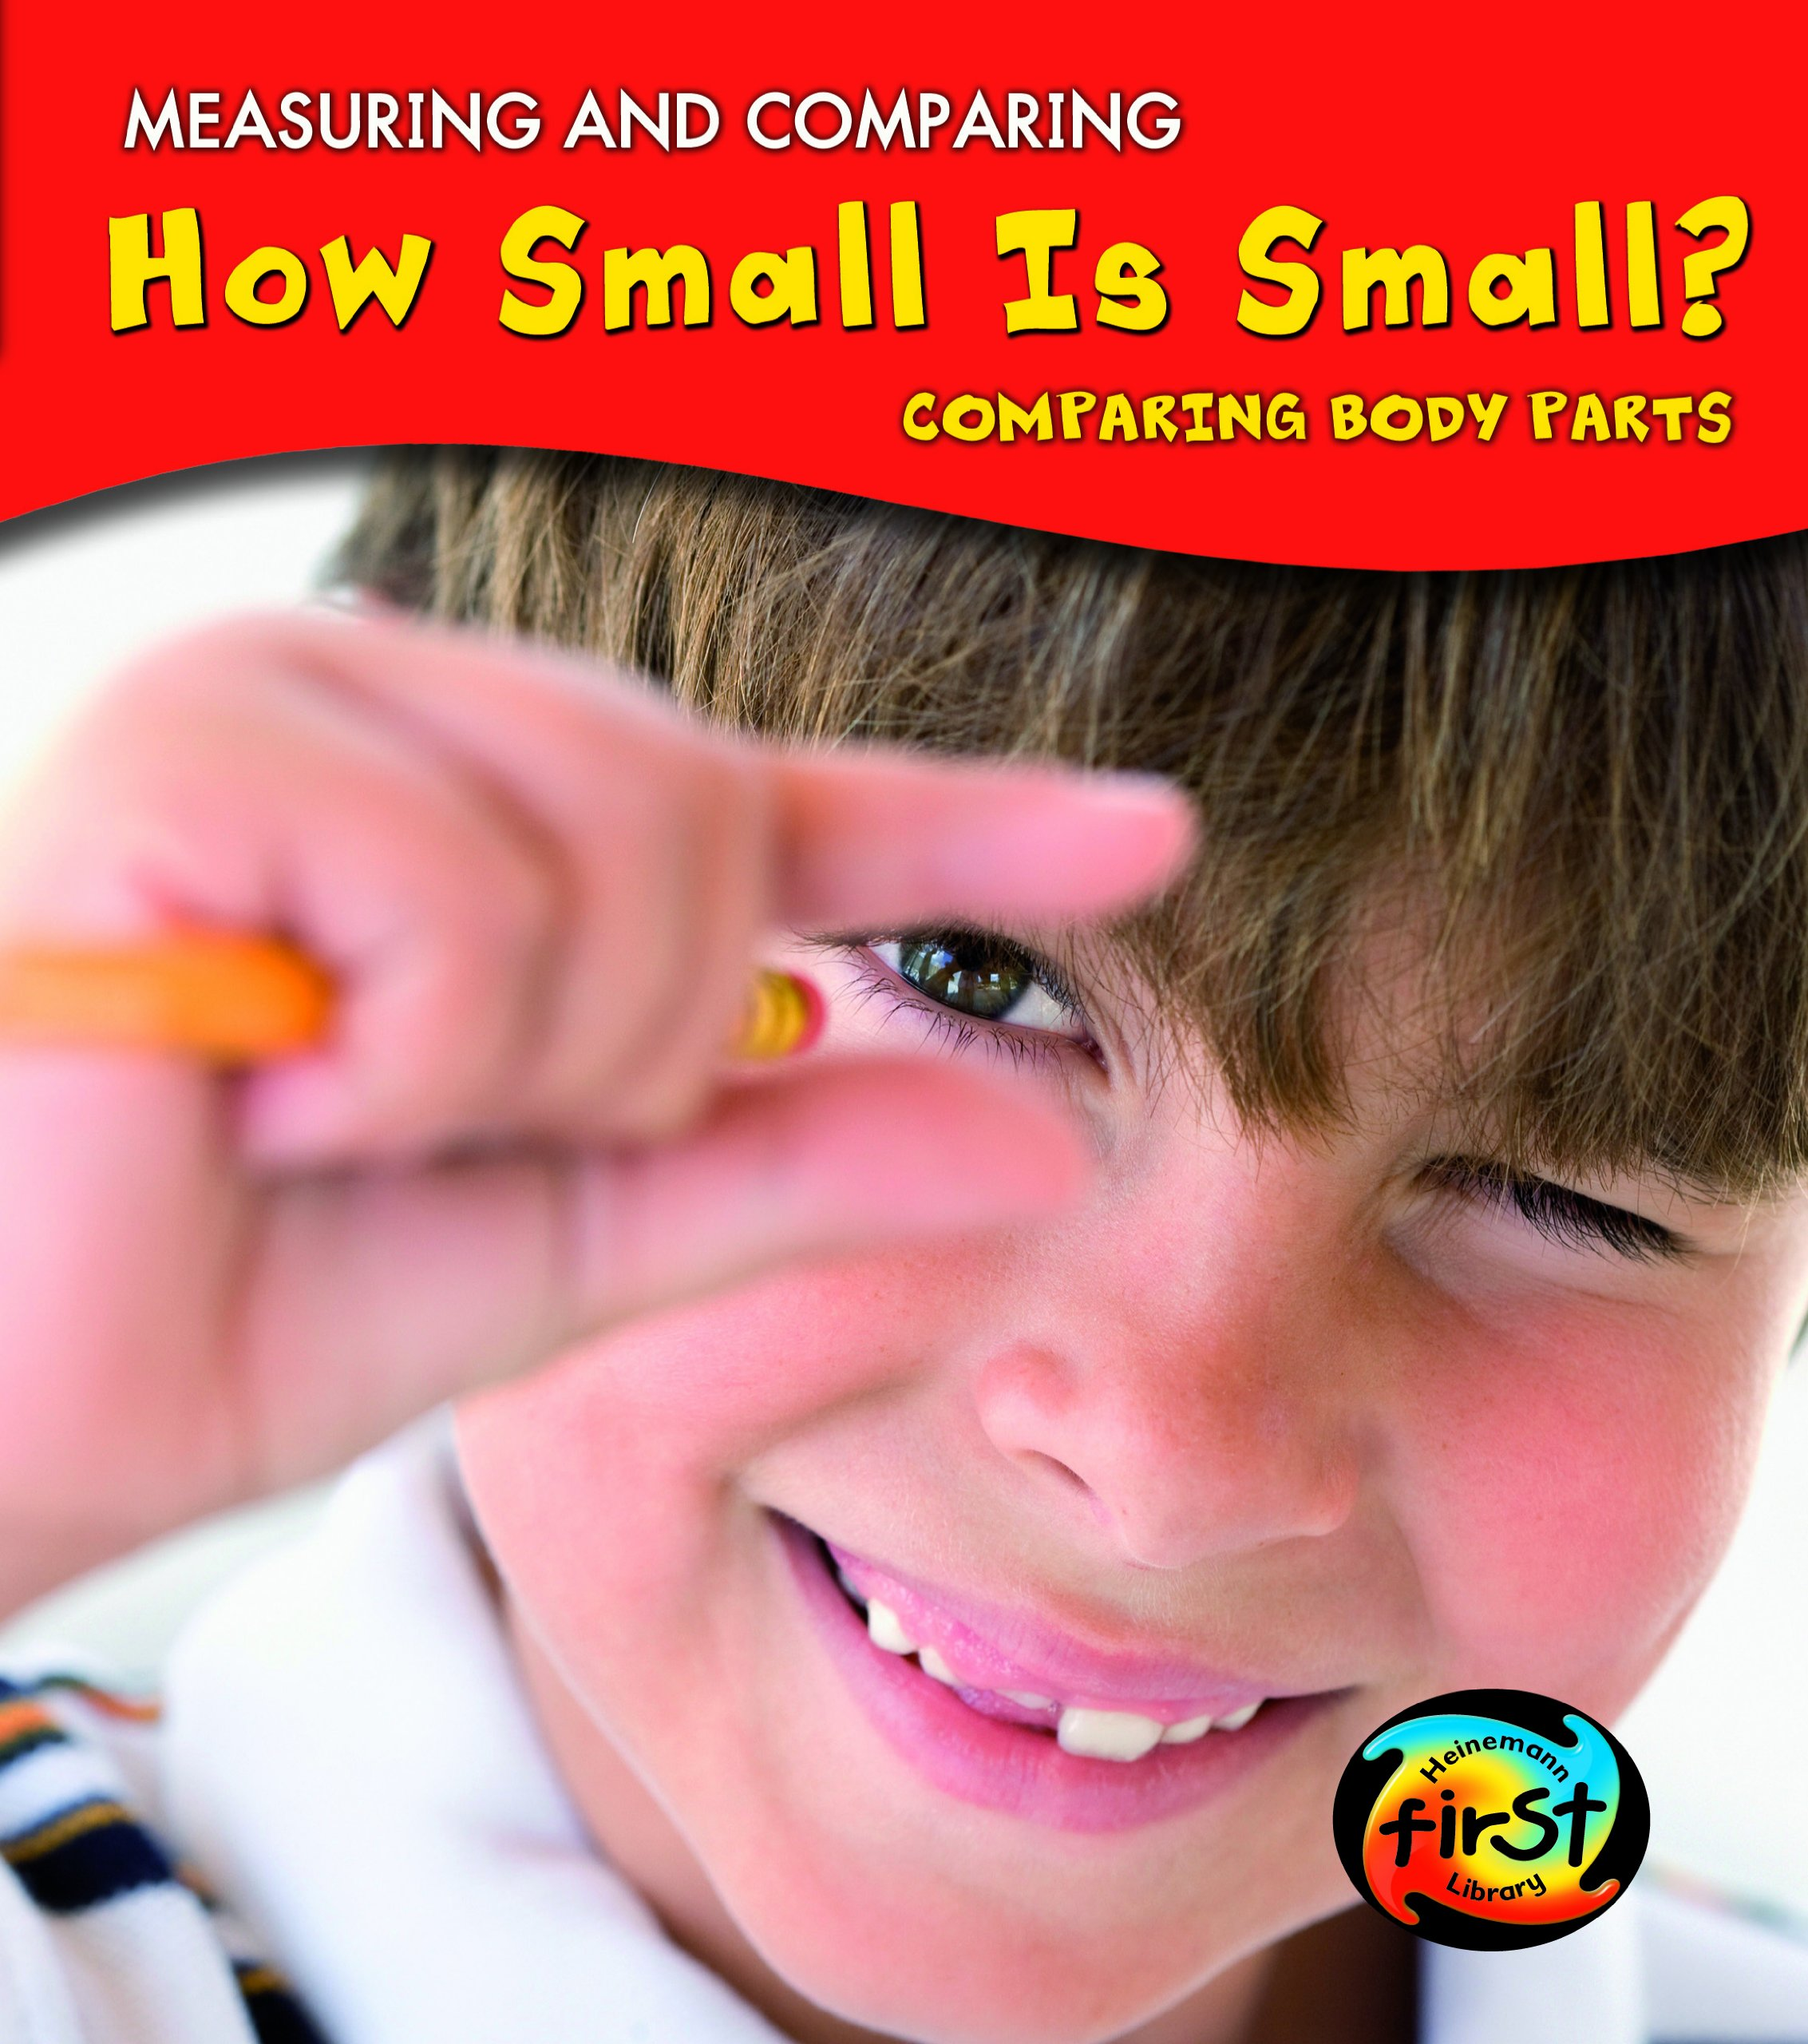 How Small Is Small?: Comparing Body Parts (Measuring and Comparing) by Brand: Heinemann